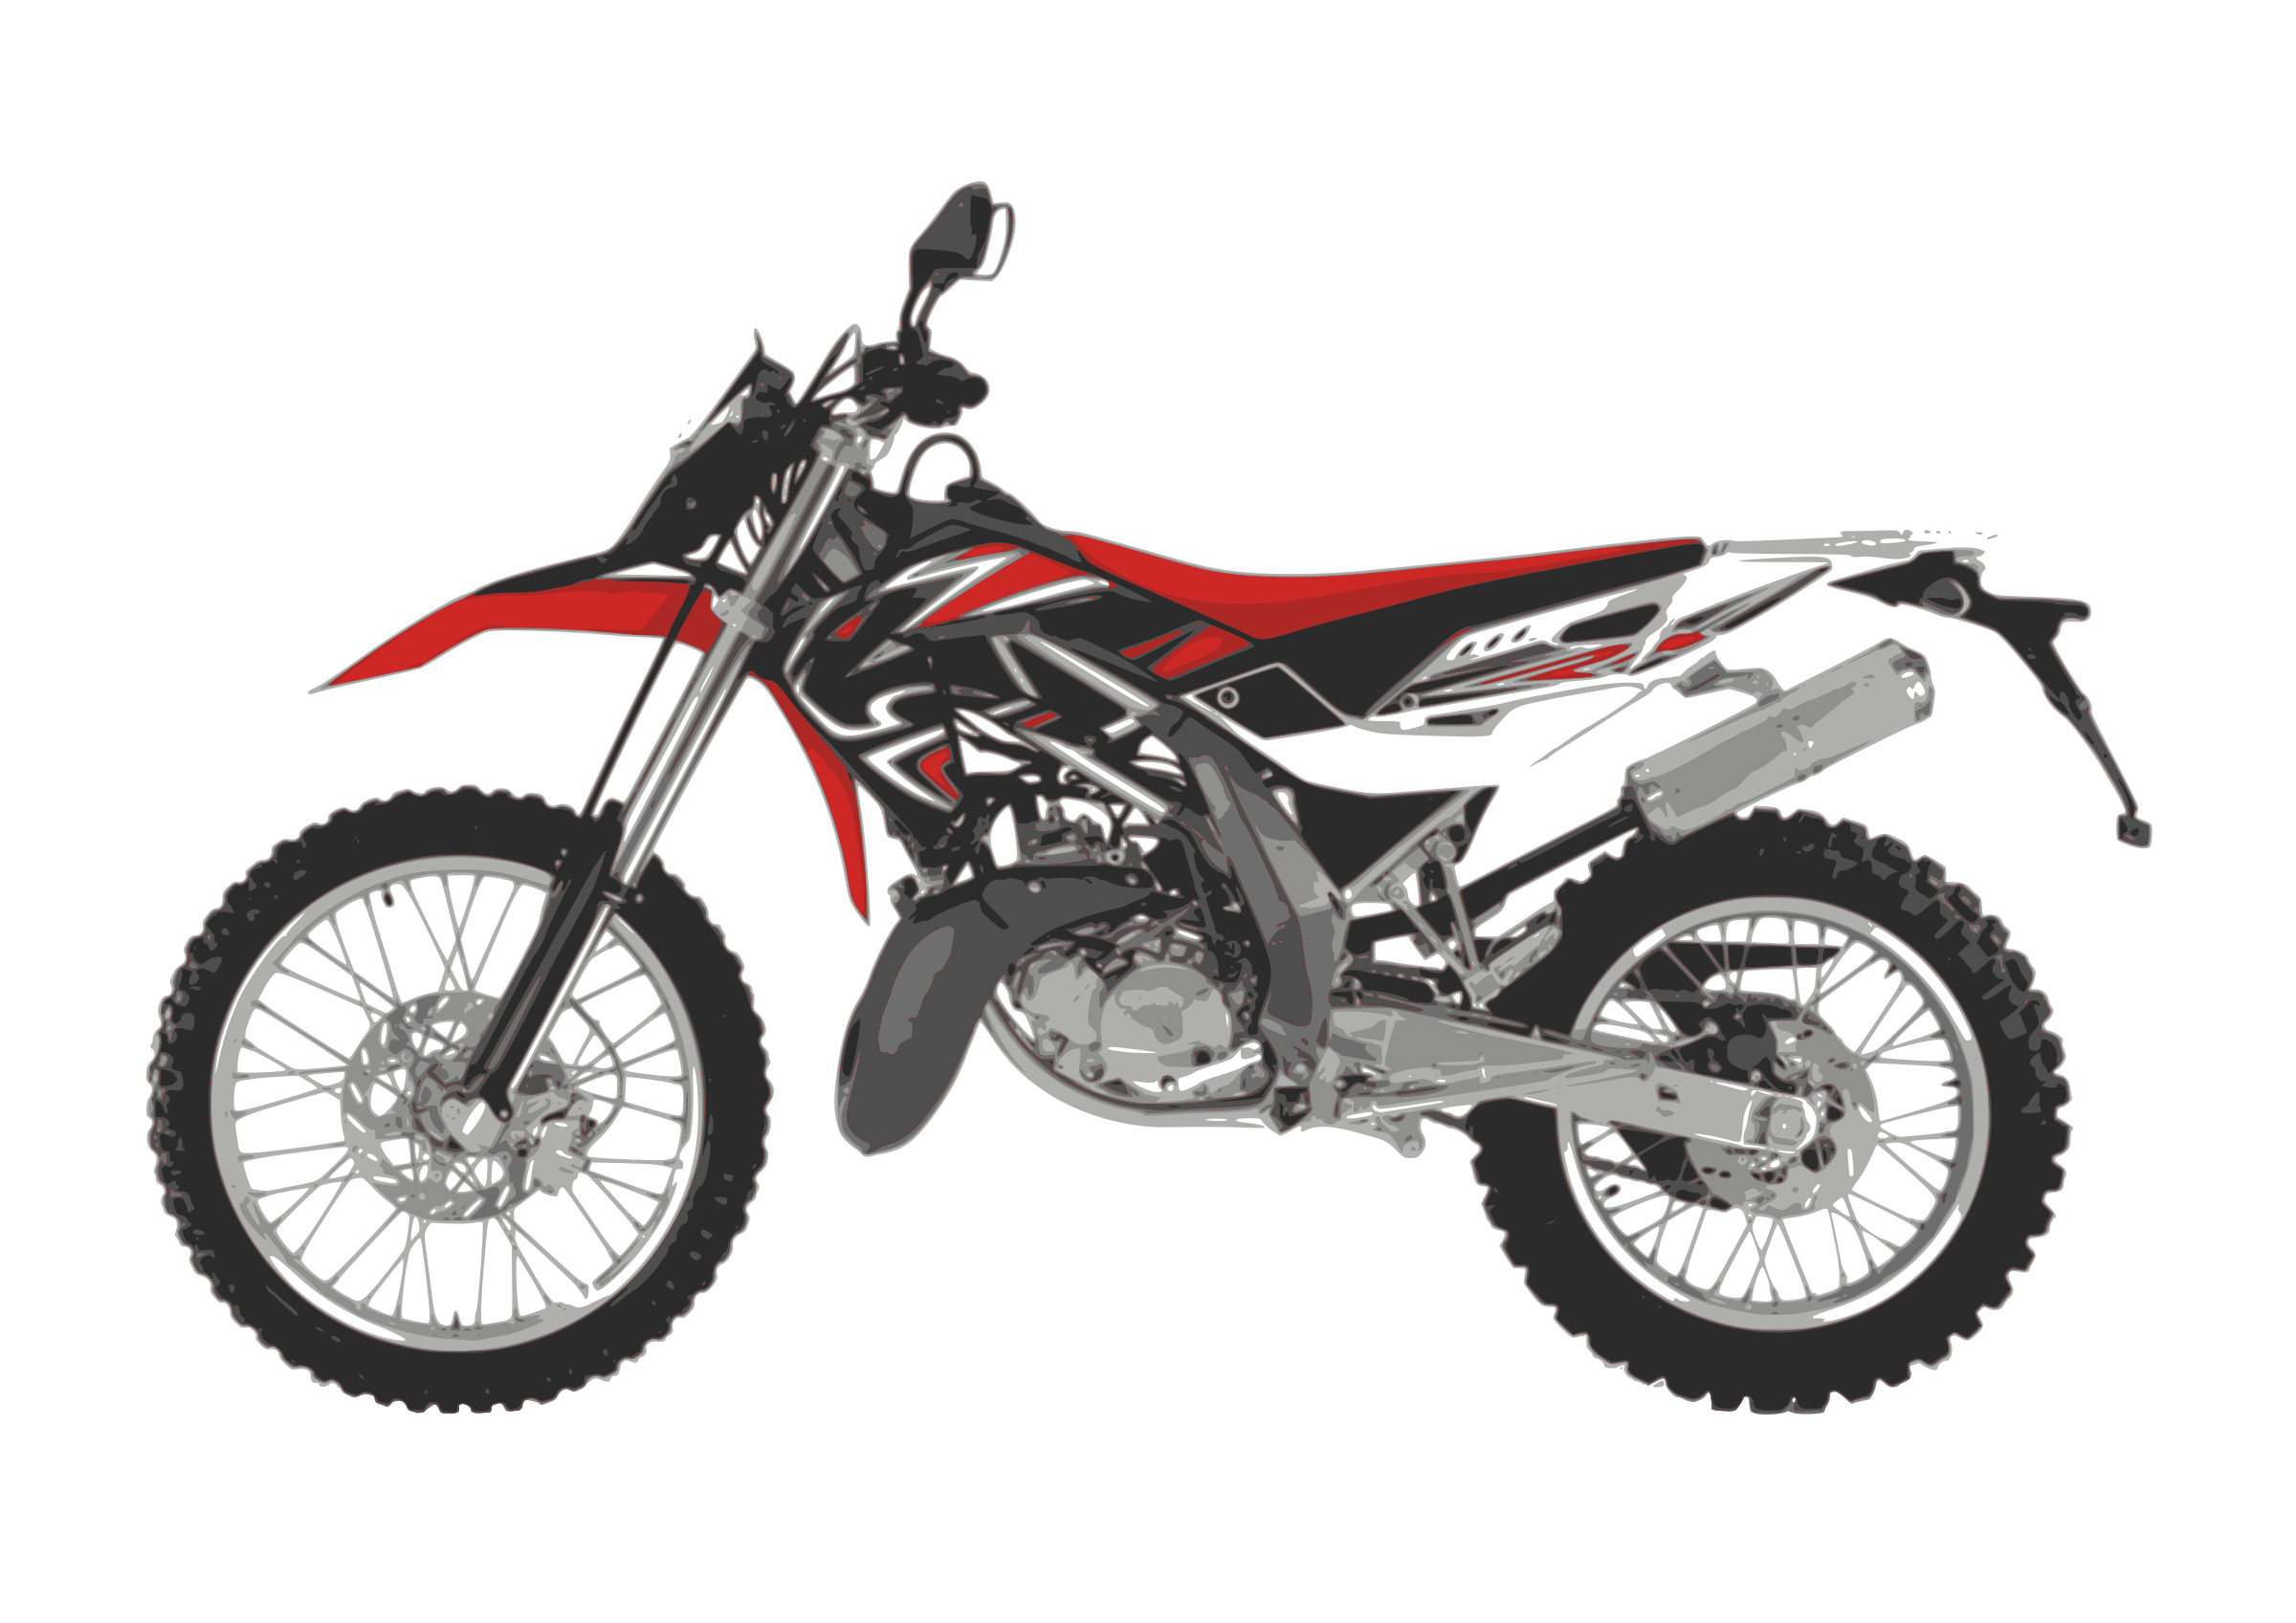 motorcycle enduro by Isidoro Ambasch